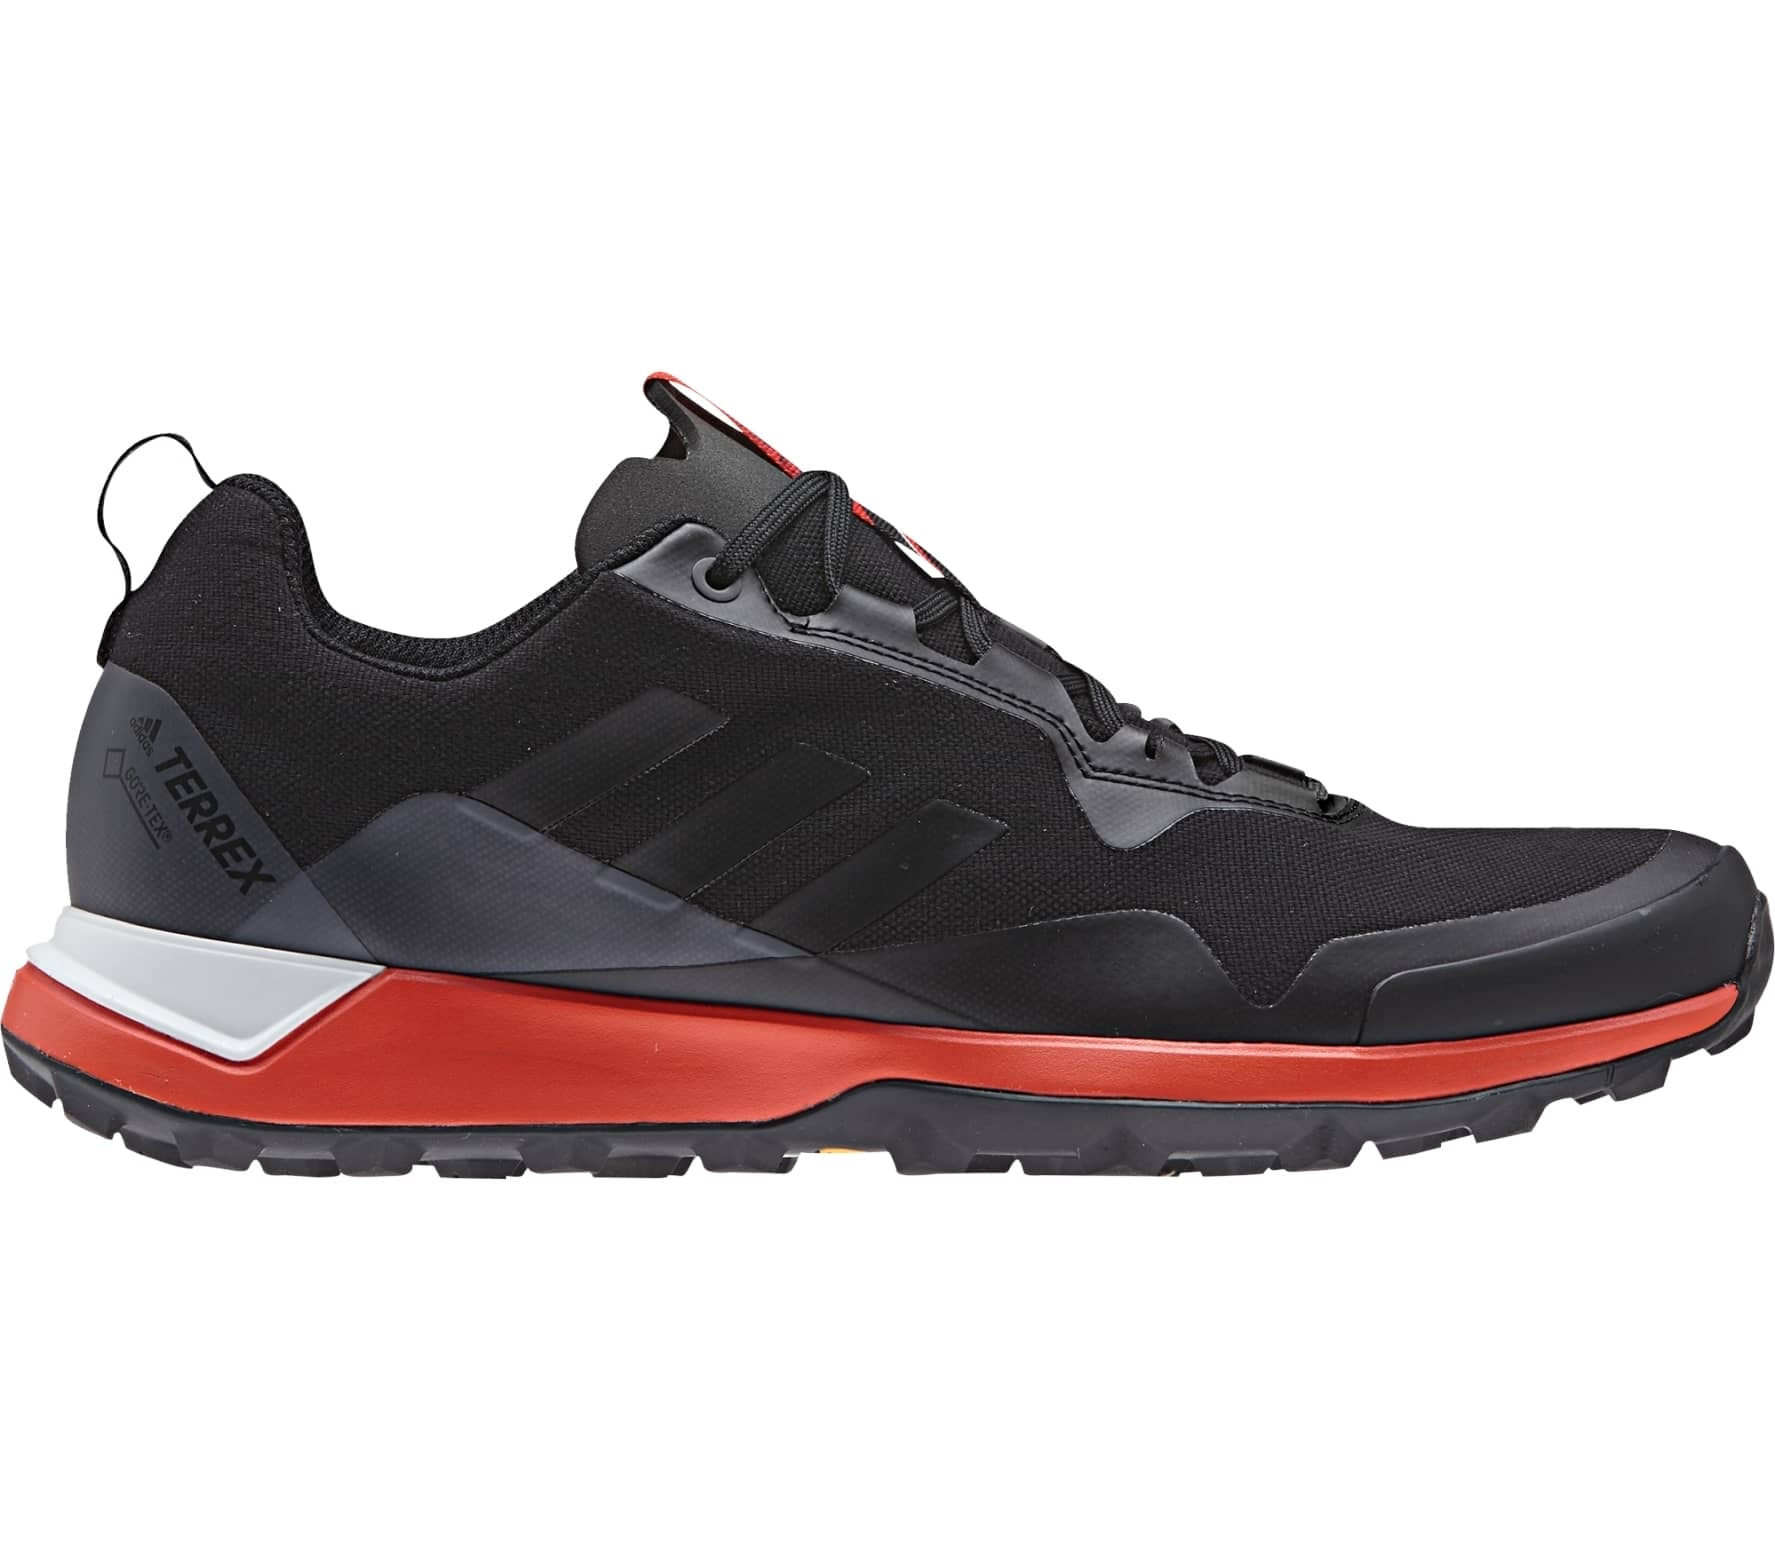 Adidas - Terrex CMTK GTX men s trail running shoes (black red) - buy ... 60a5595aa